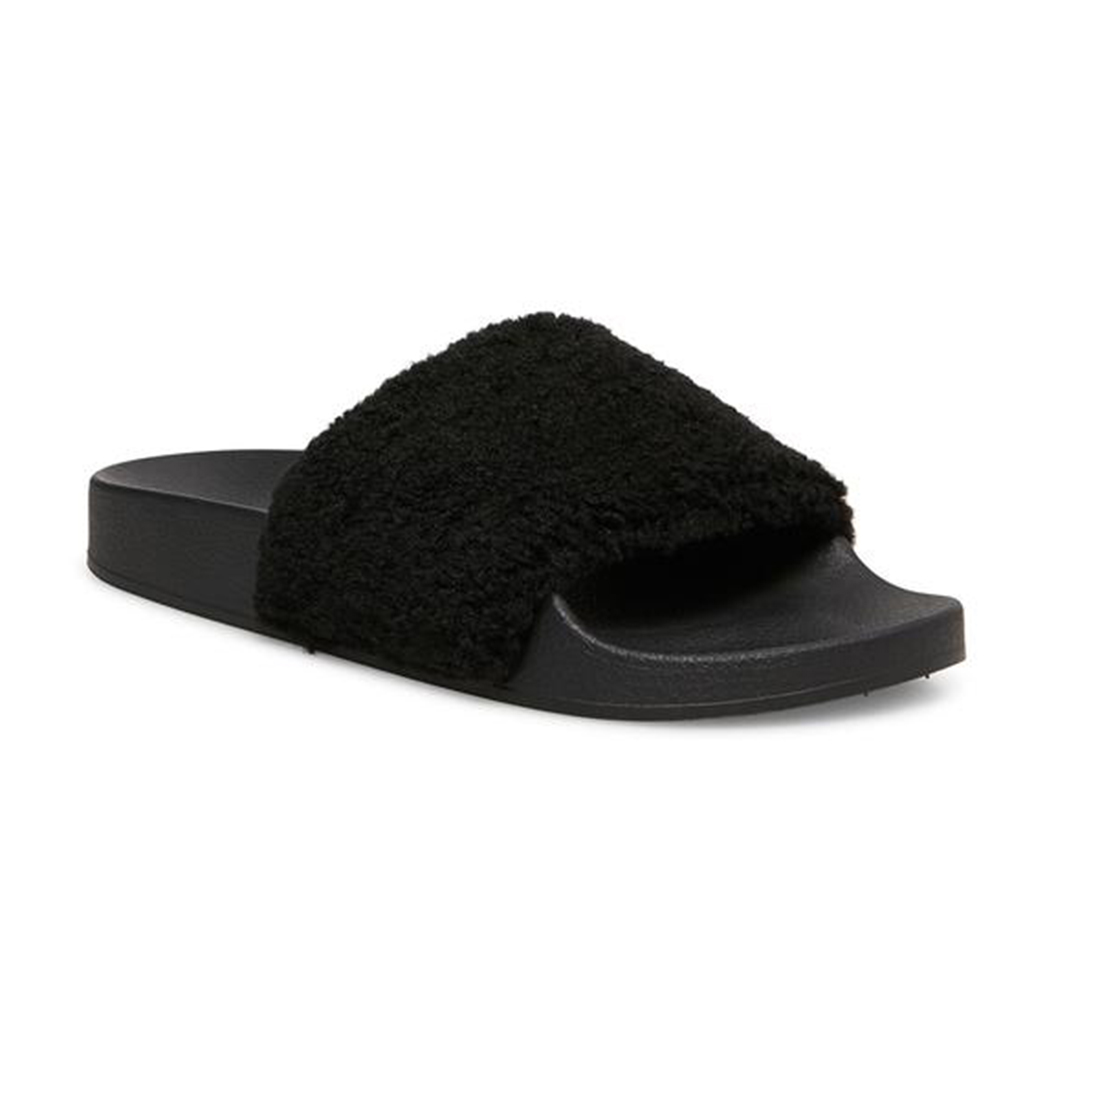 Steve Madden Shear Slipper In Black 75255